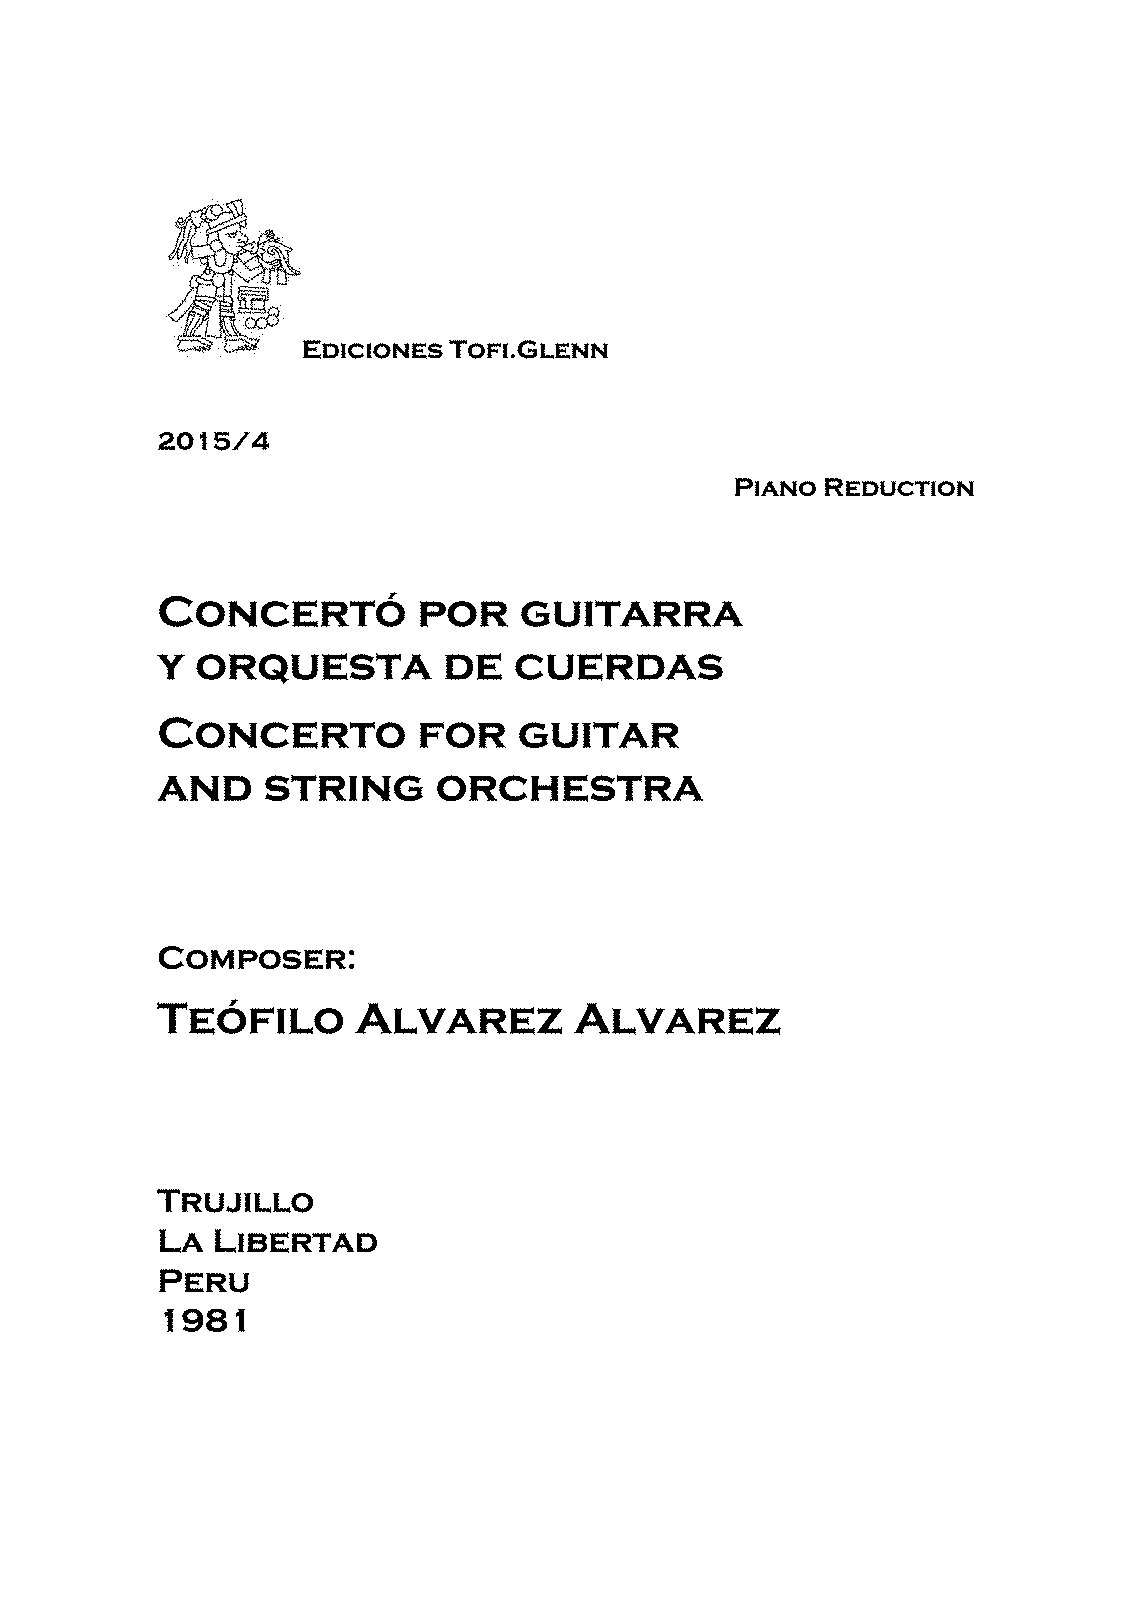 PMLP590693-TG4 ALVAREZ GUITAR CONCERTO PIANO REDUCTION.pdf